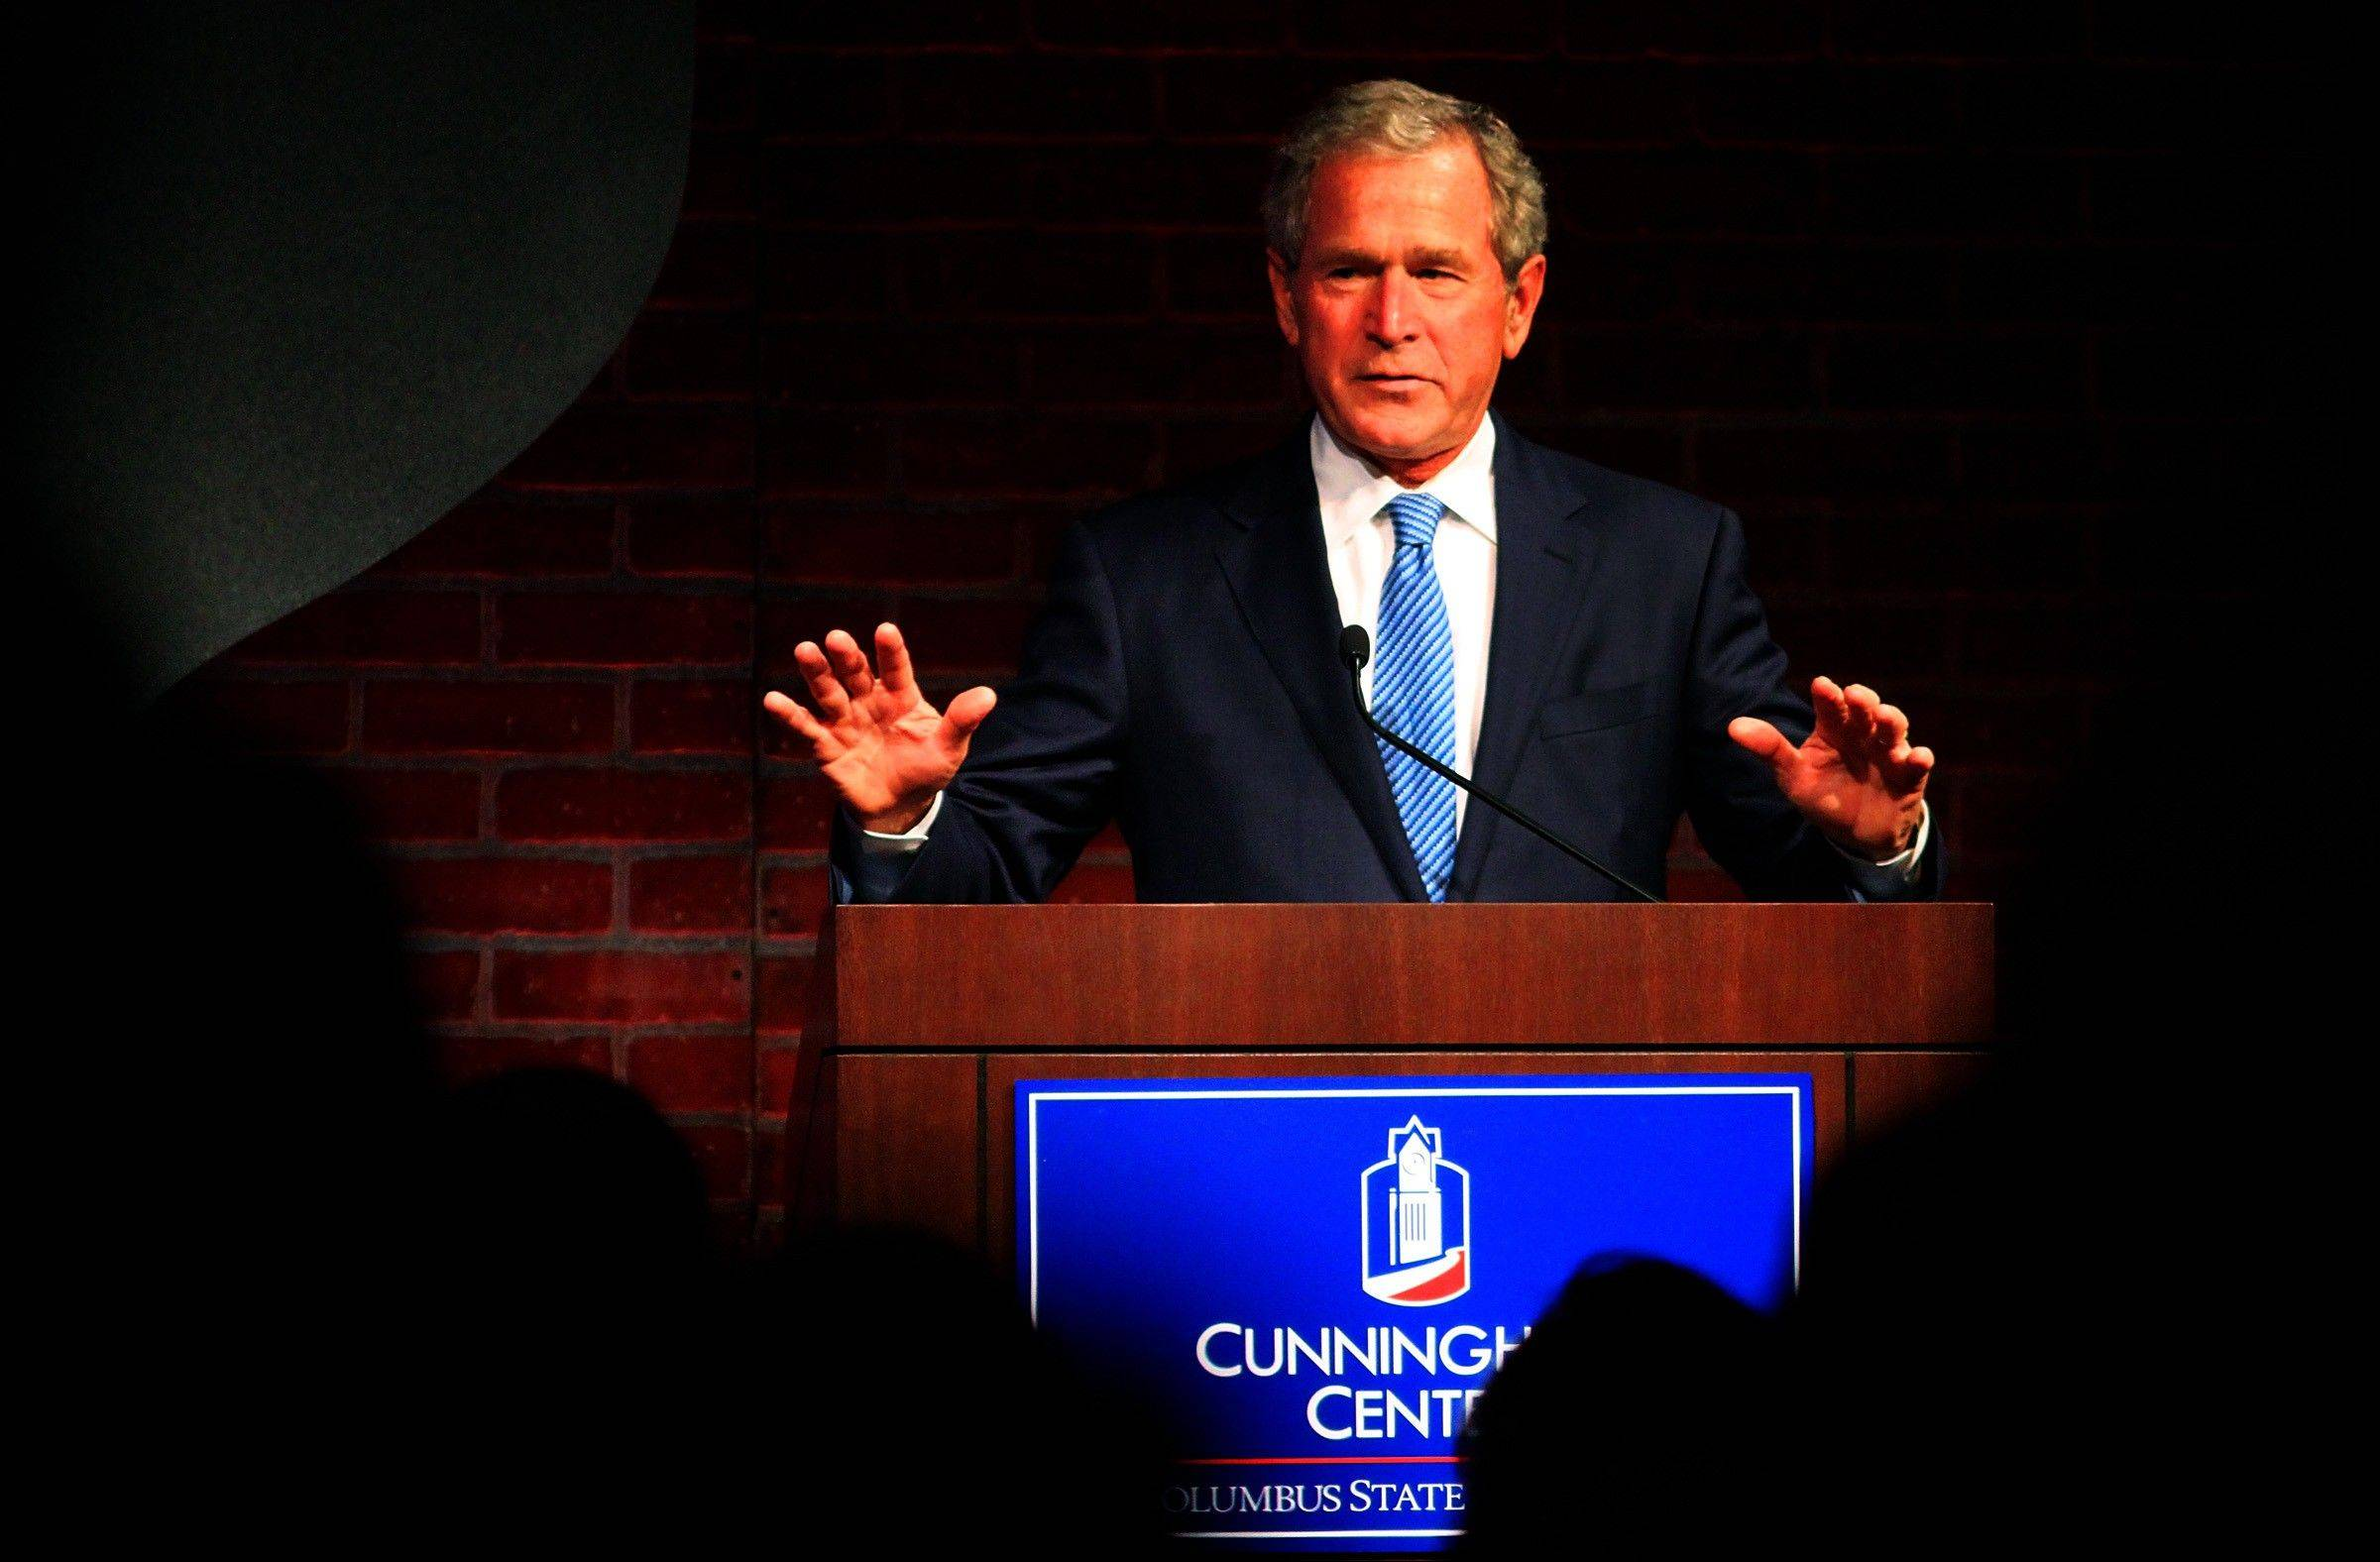 Former President George W. Bush begins his speech, Monday during the annual Jim Blanchard Leadership Forum at the Columbus Convention and Trade Center in Columbus, Ga.